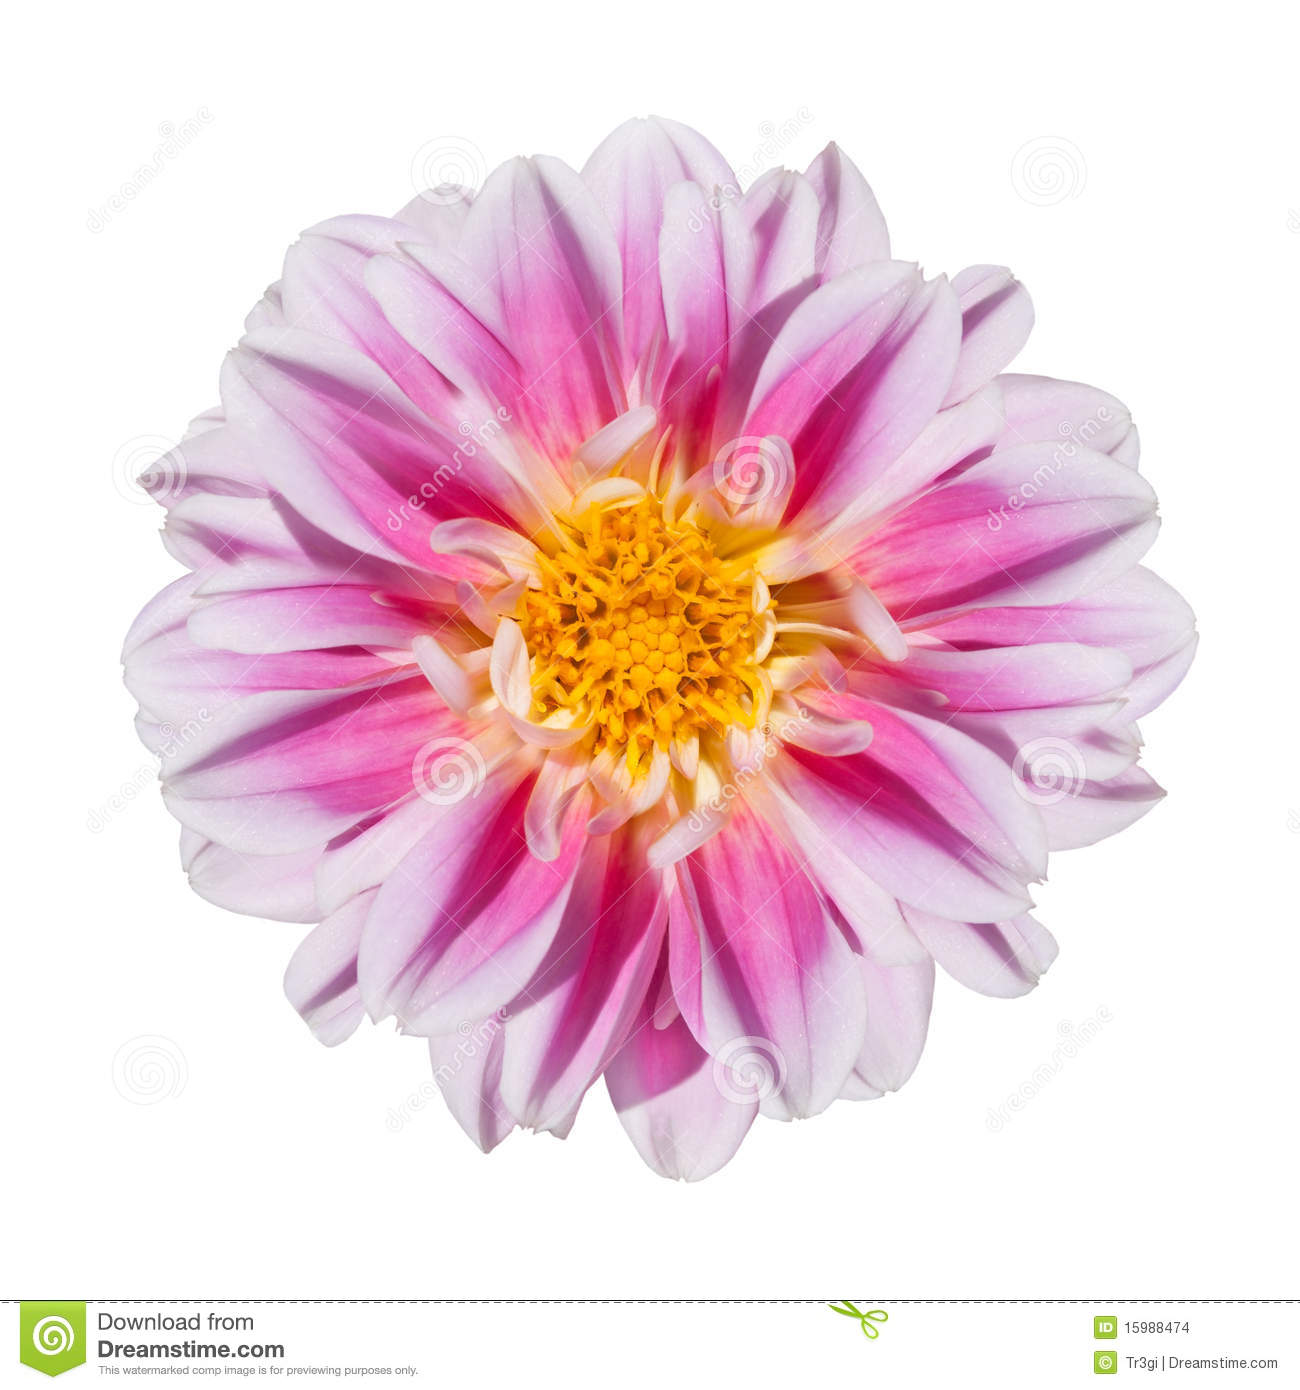 Pink and white dahlia flower isolated on white stock photo image download pink and white dahlia flower isolated on white stock photo image of botanical izmirmasajfo